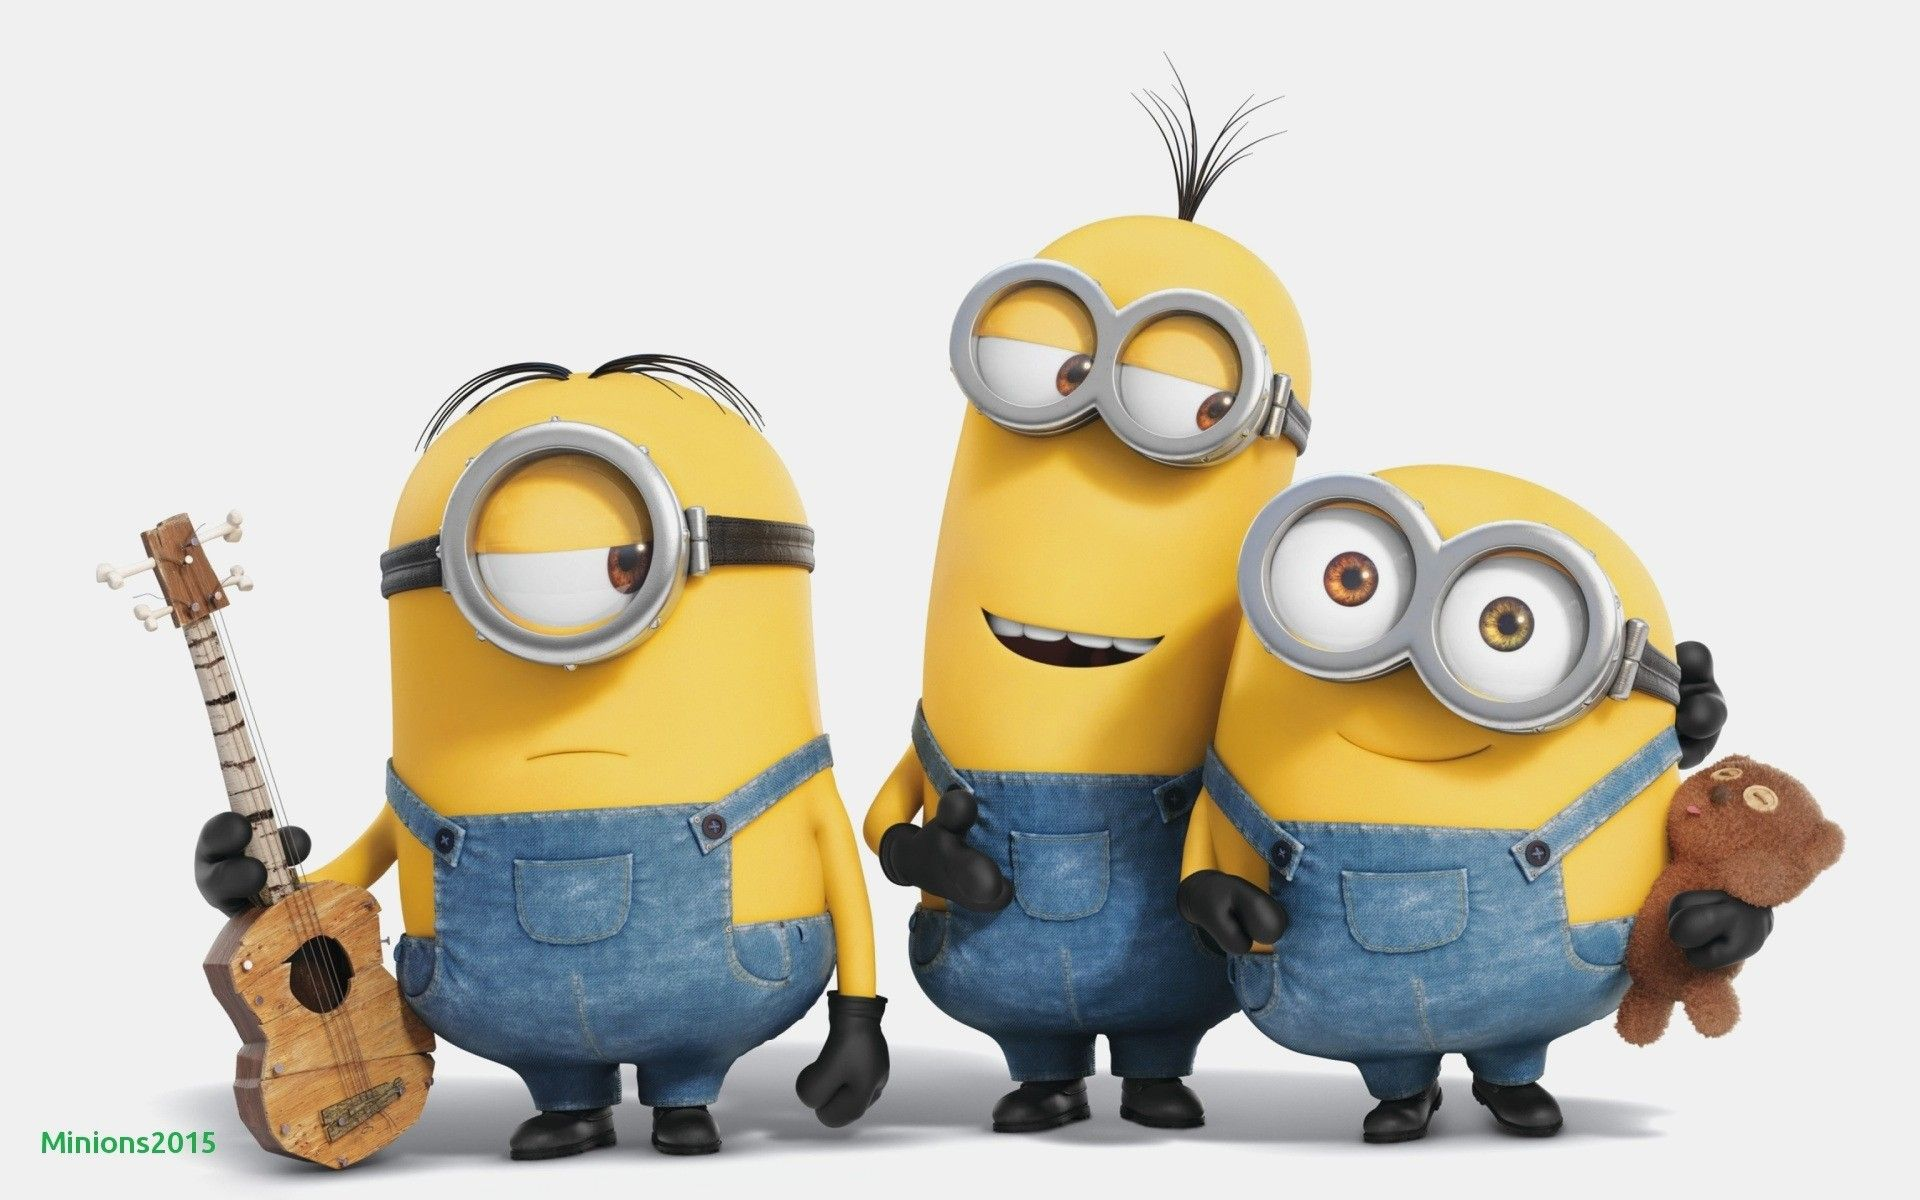 Lovely Minions Wallpaper Android Di 2020 Dengan Gambar